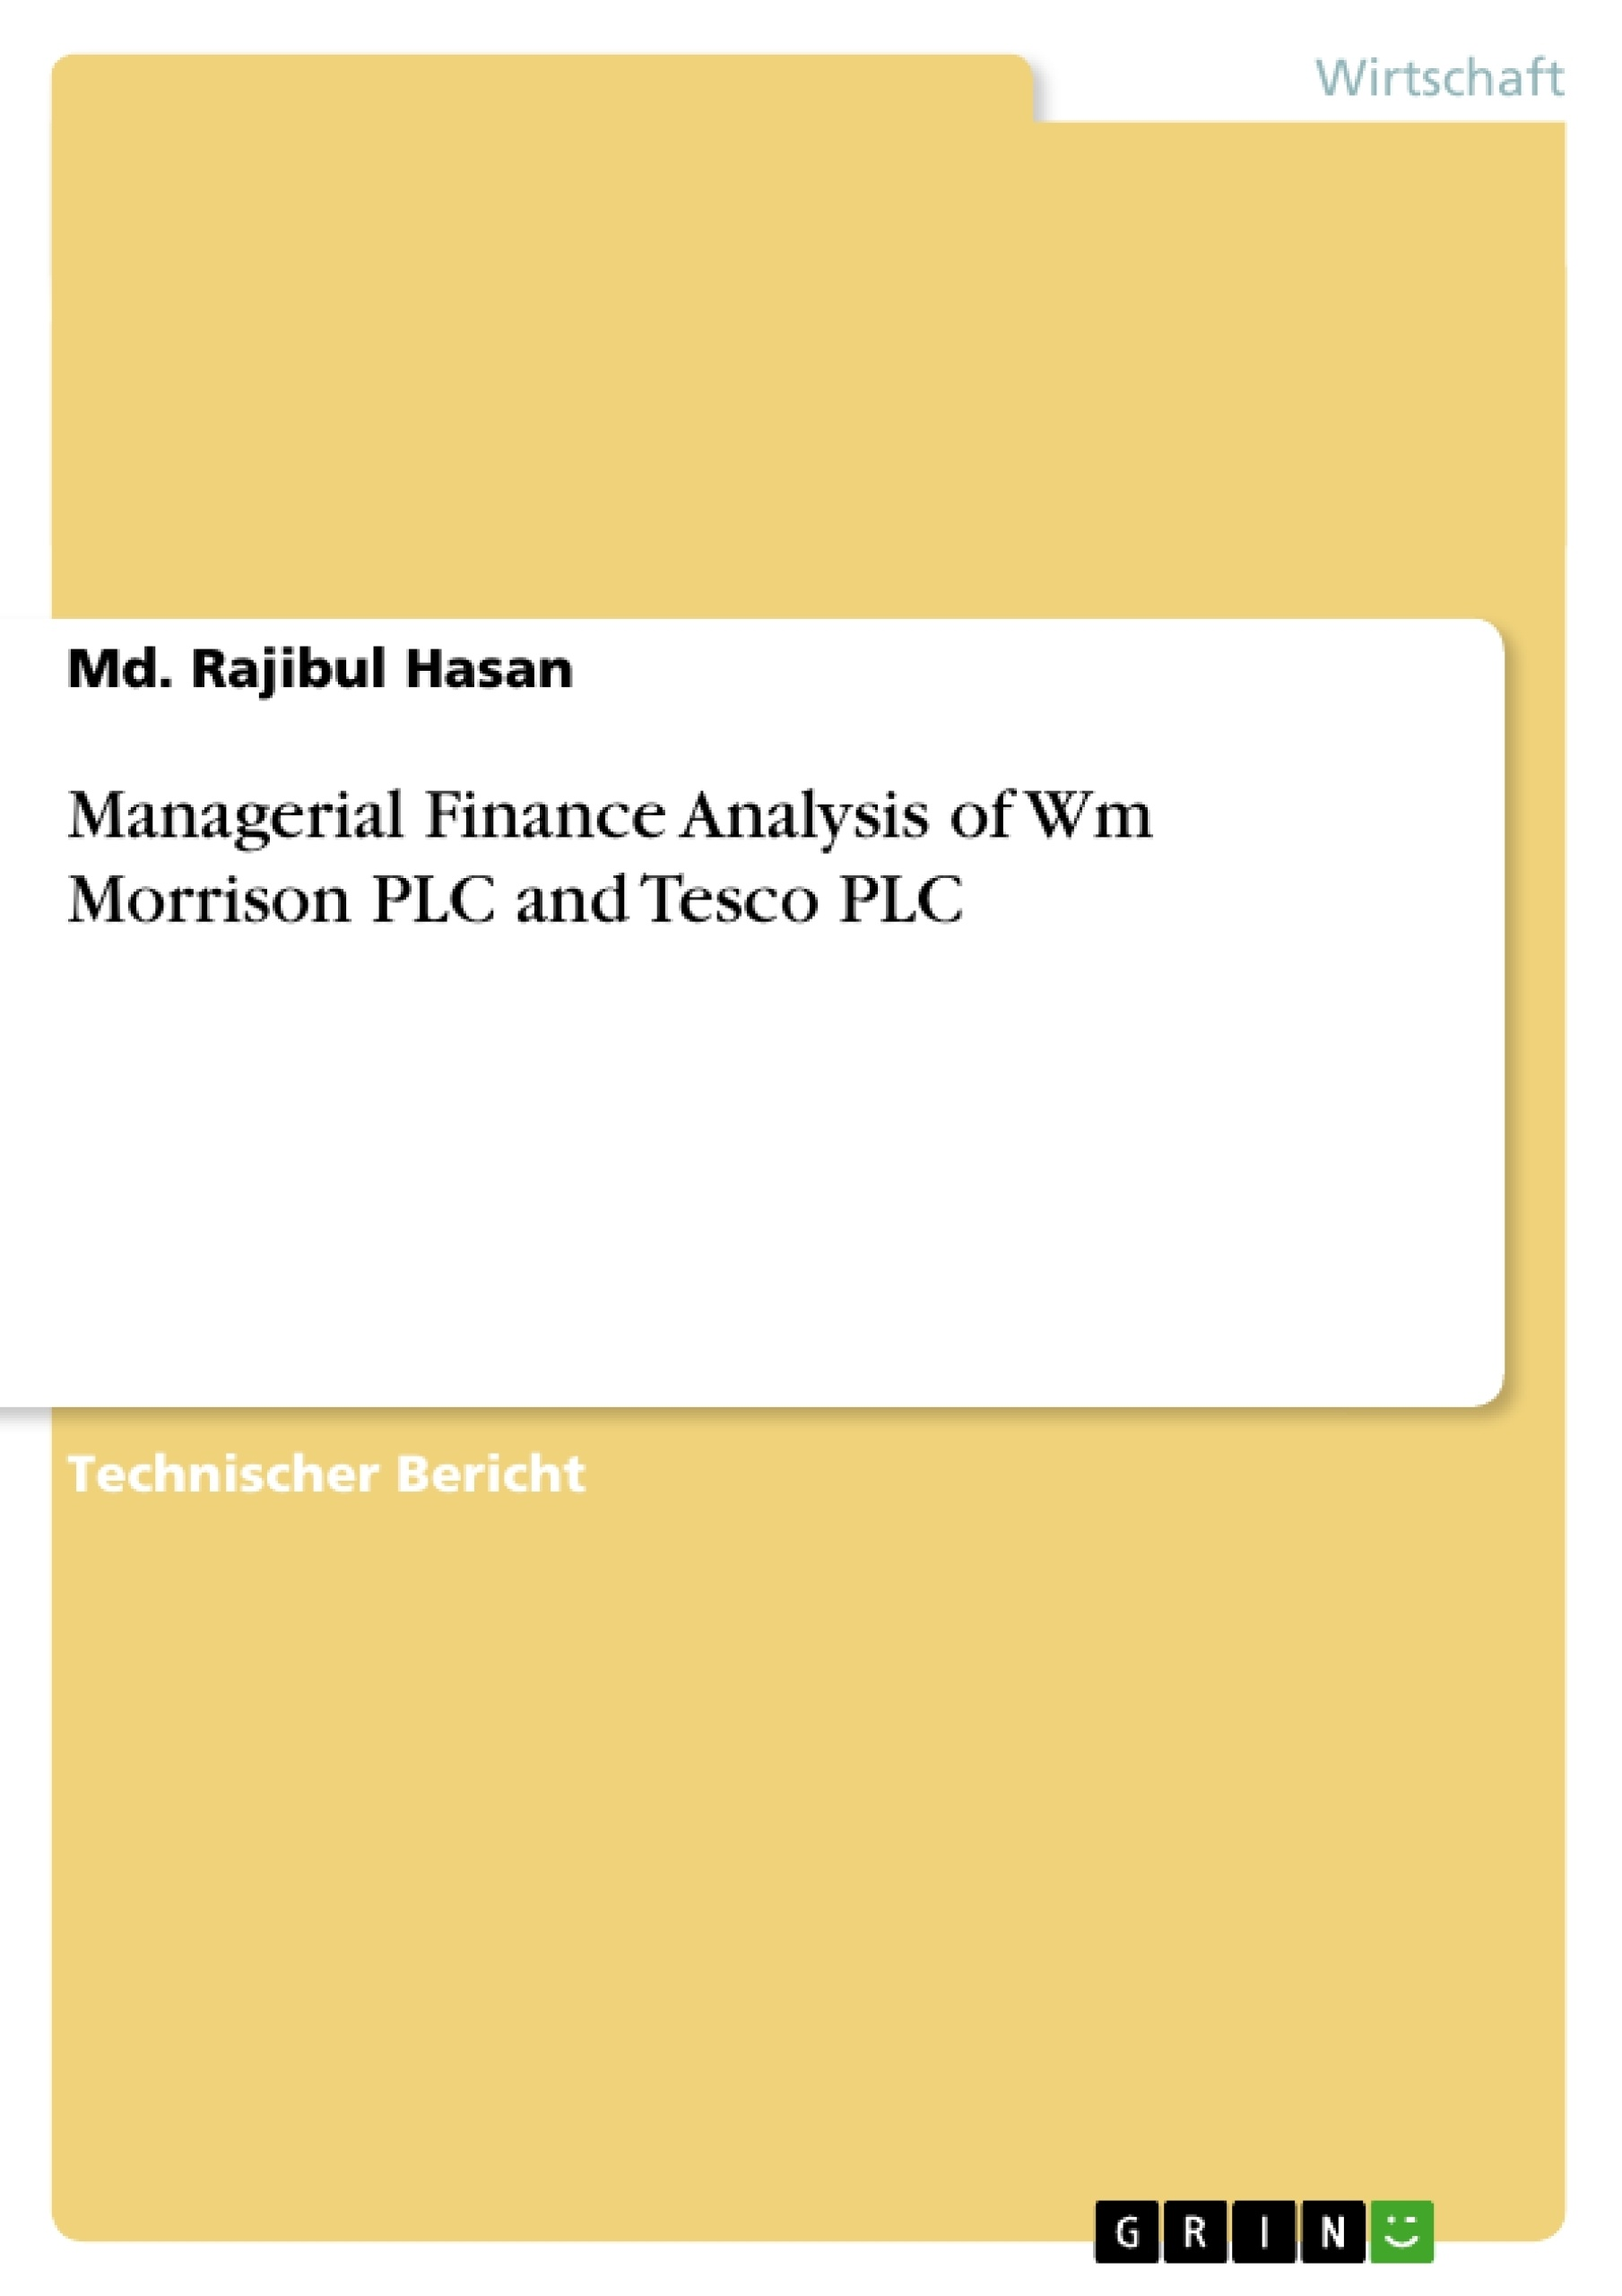 Titel: Managerial Finance Analysis of Wm Morrison PLC and Tesco PLC